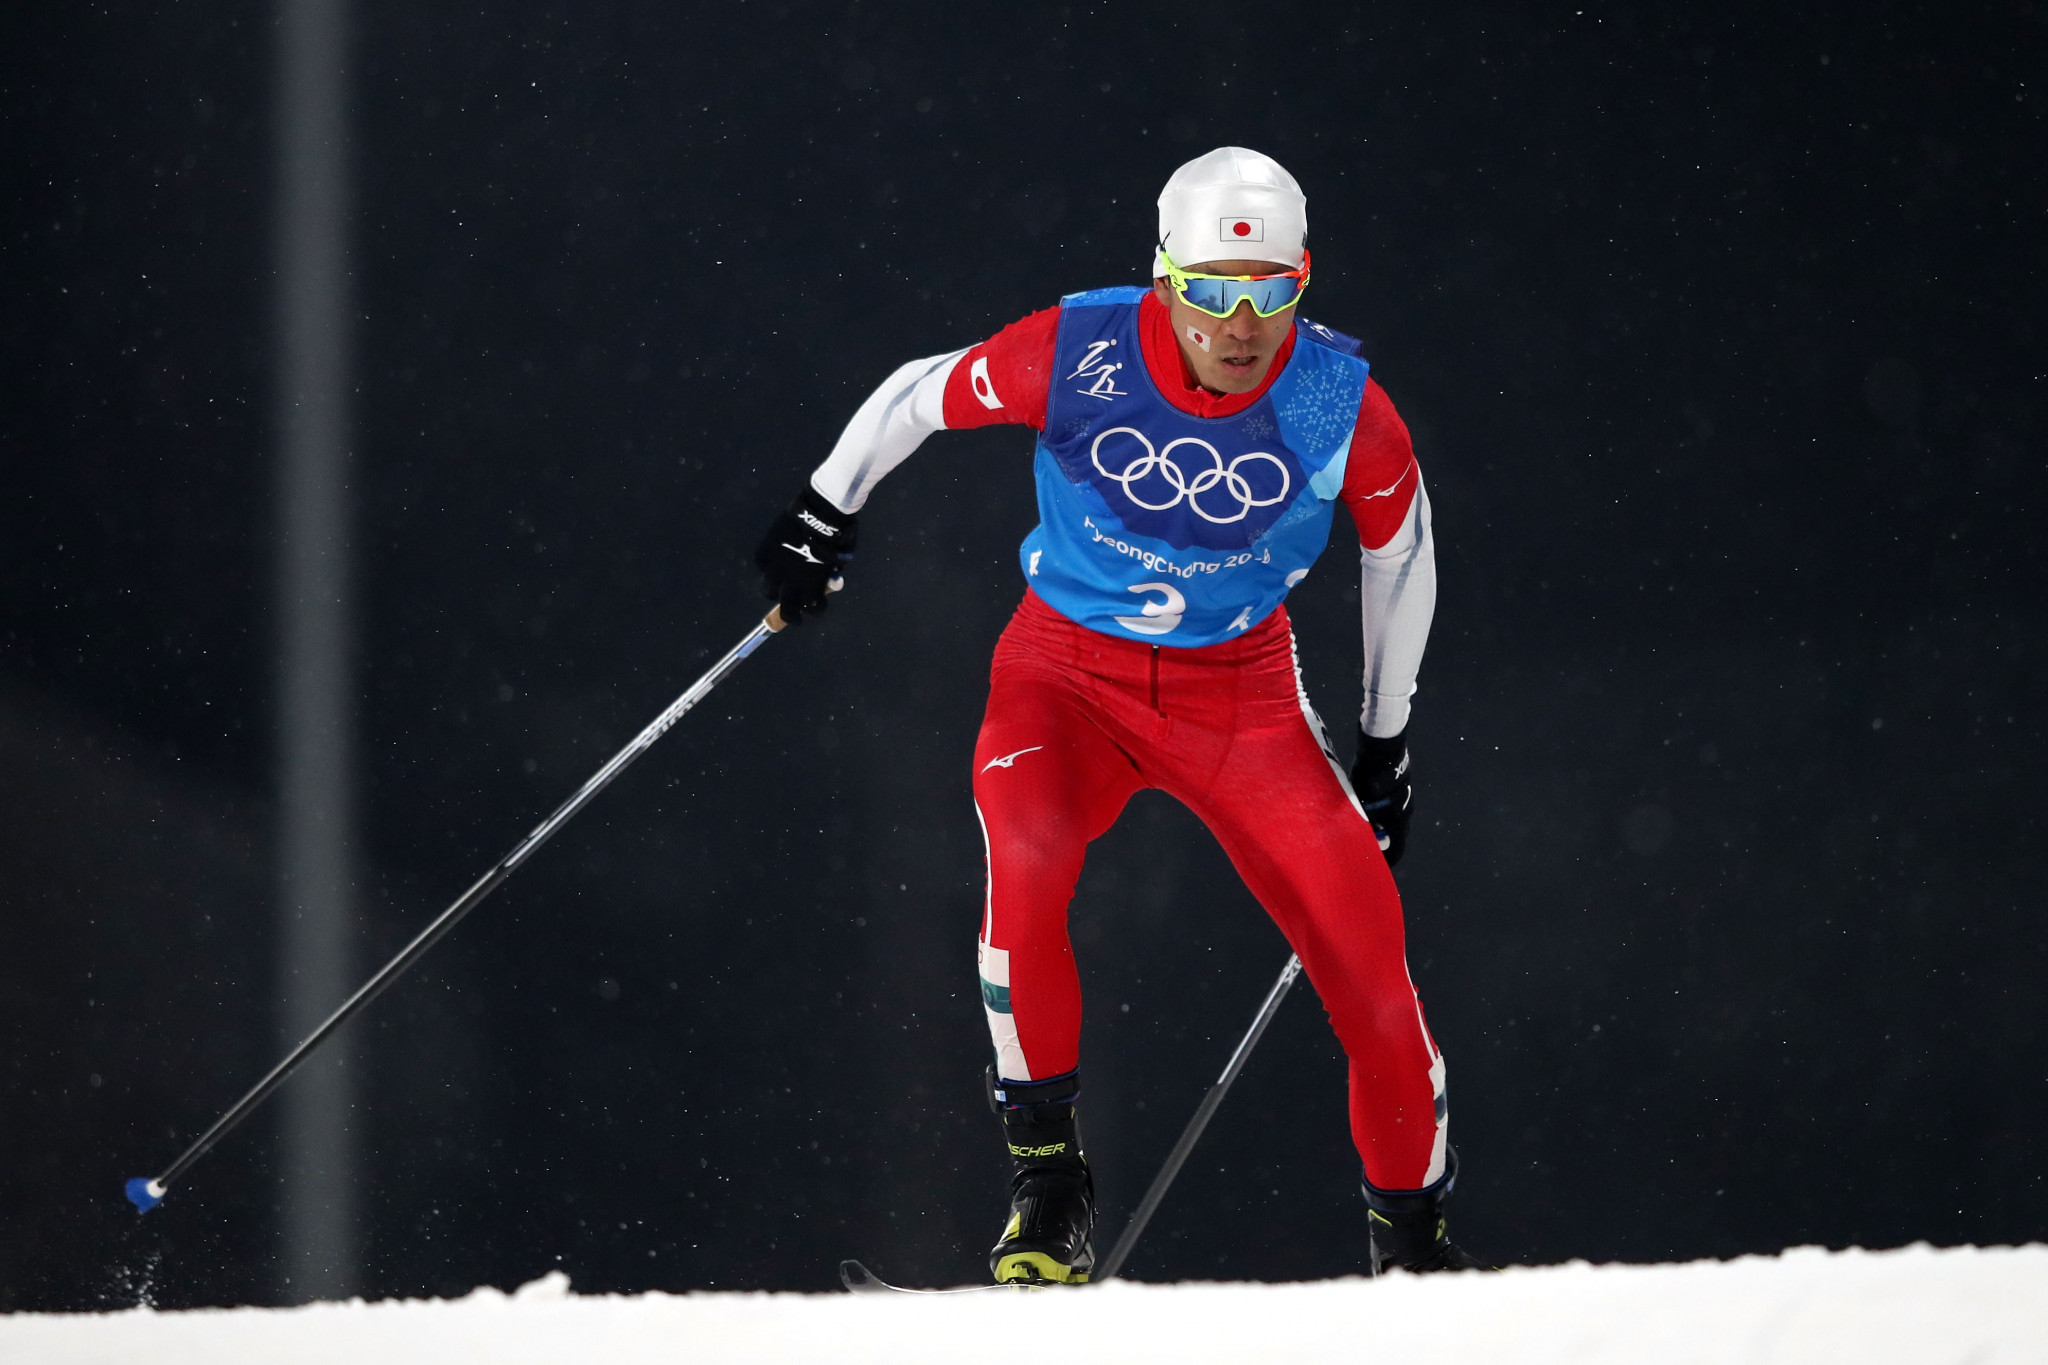 Akito Watabe, pictured at the Olympics, led after the ski jumping but was unable to maintain his advantage ©Getty Images